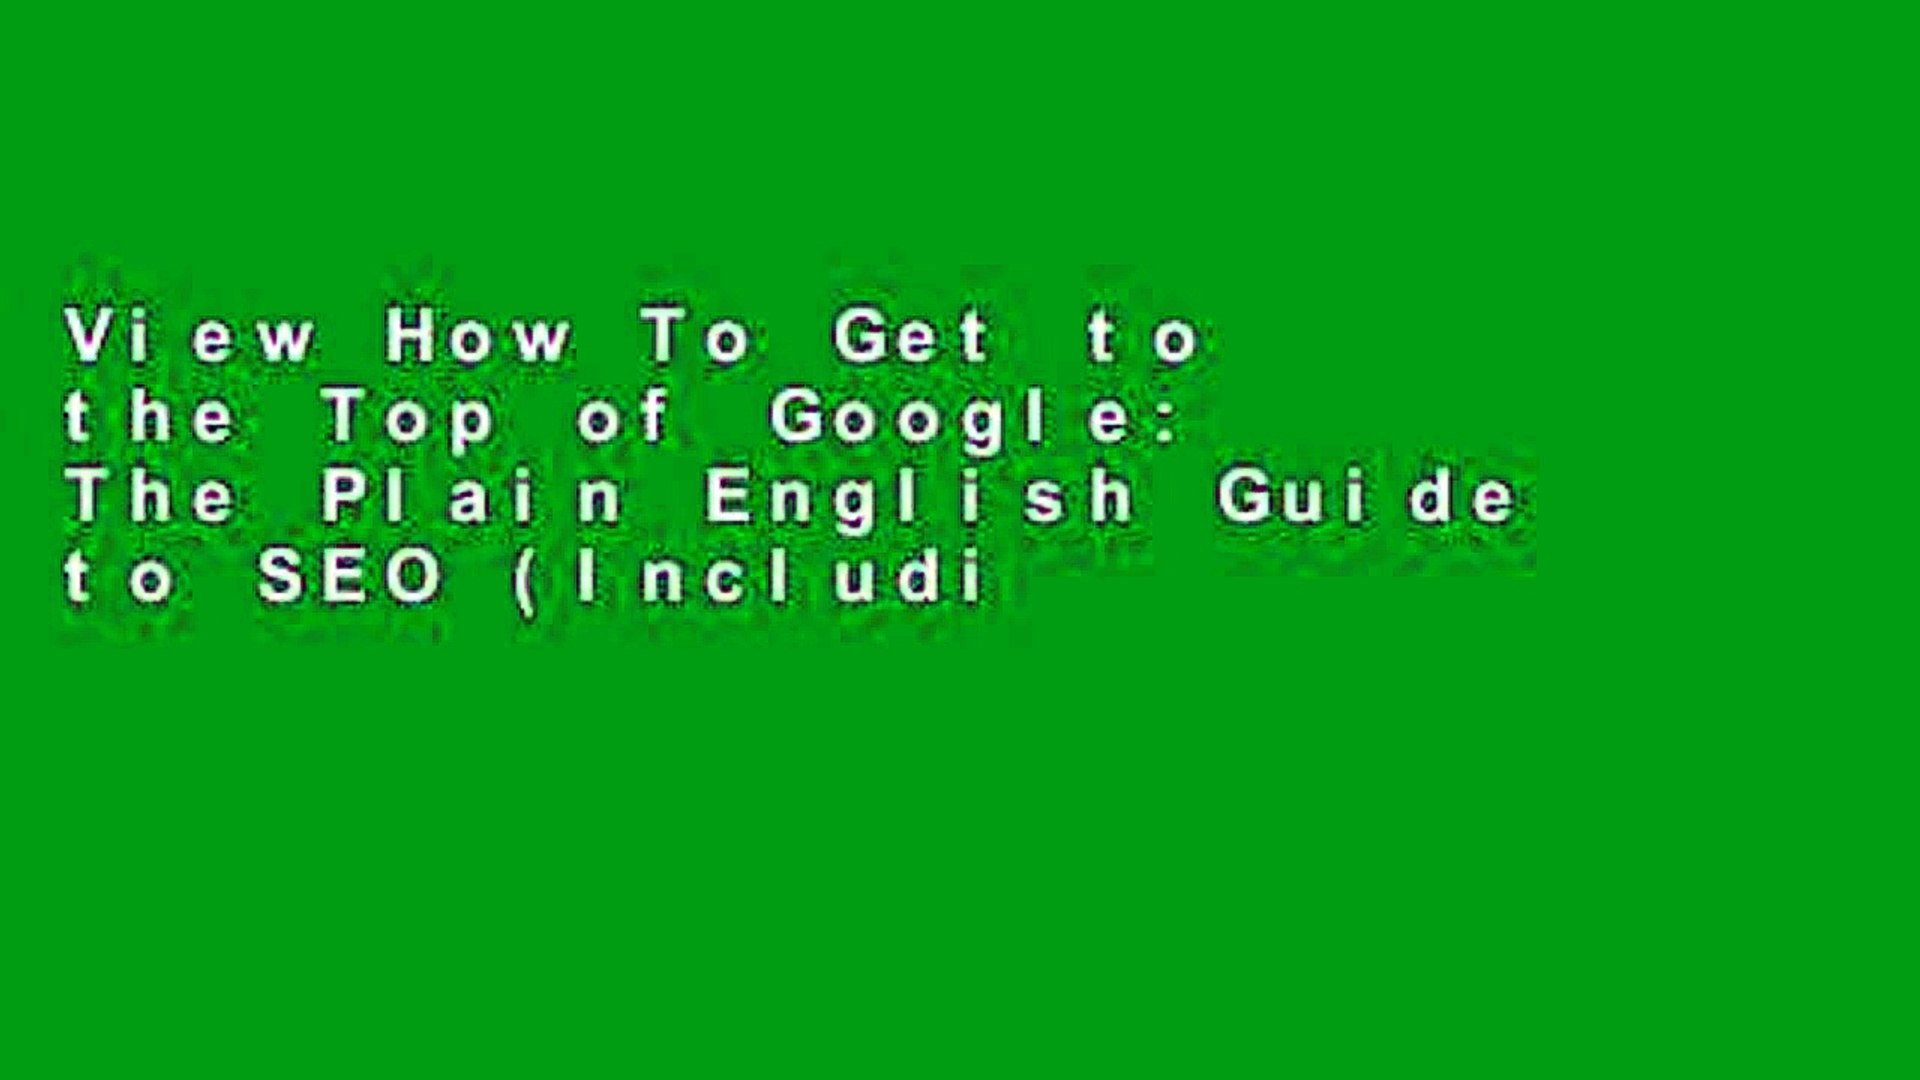 View How To Get to the Top of Google: The Plain English Guide to SEO (Including Penguin, Panda and